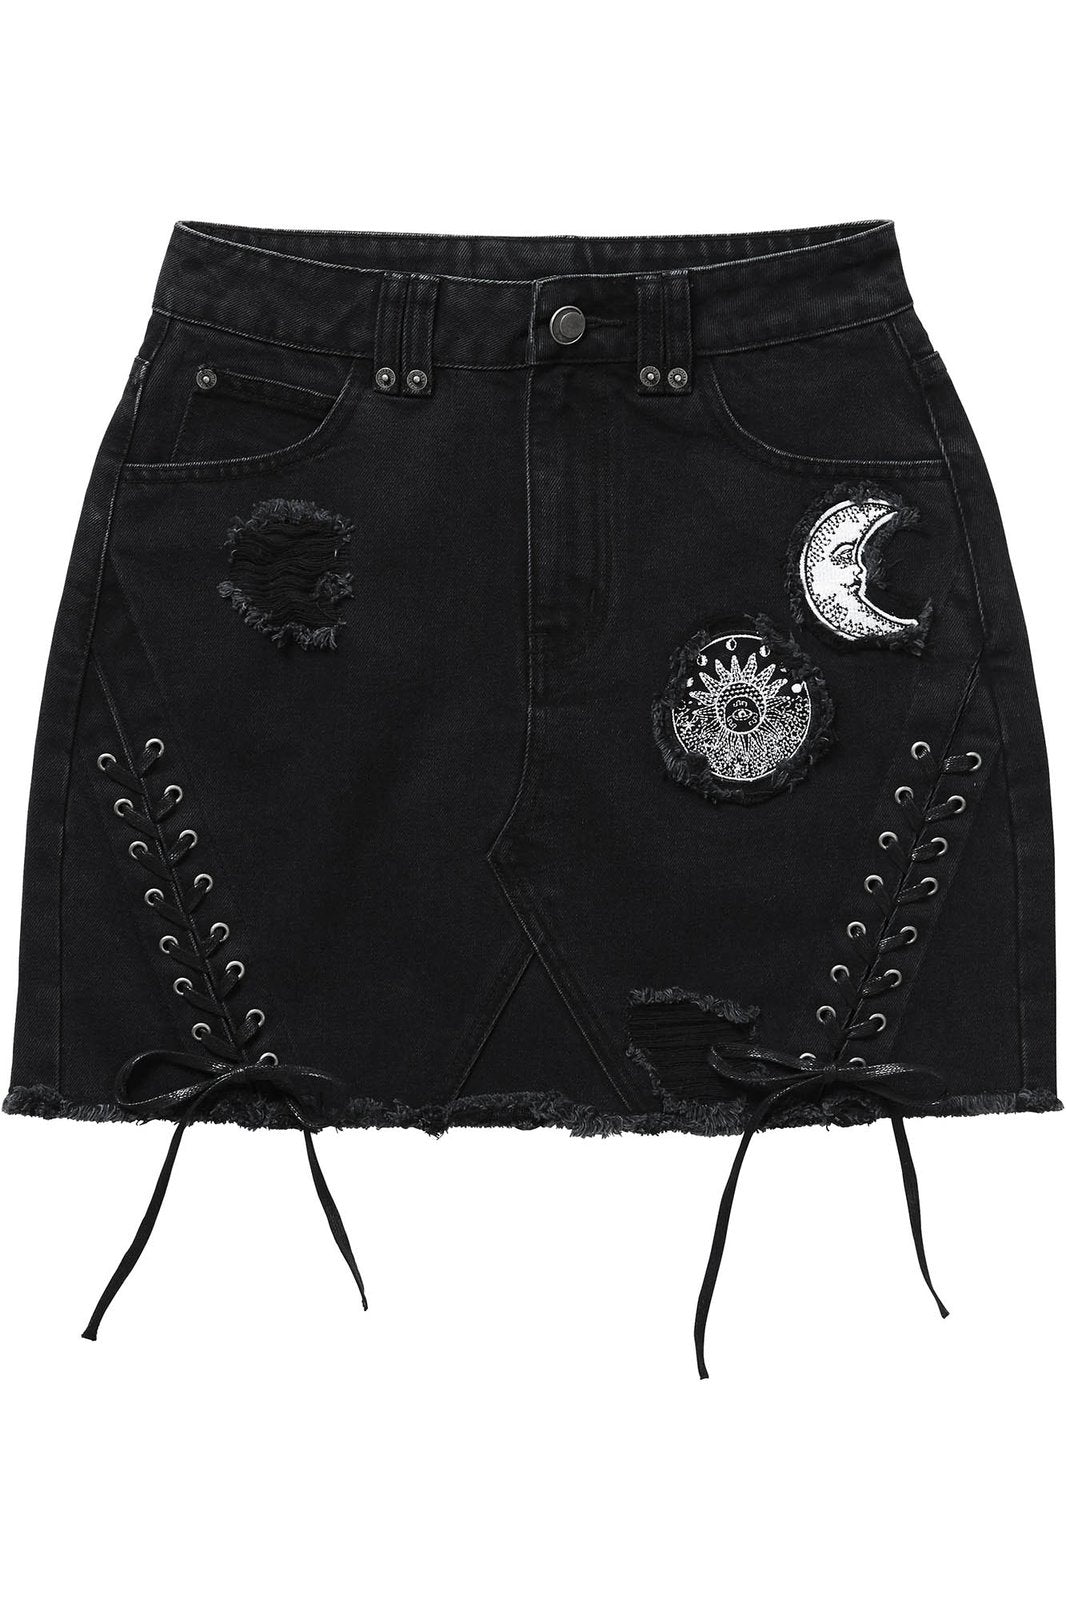 Phased Out Denim Skirt